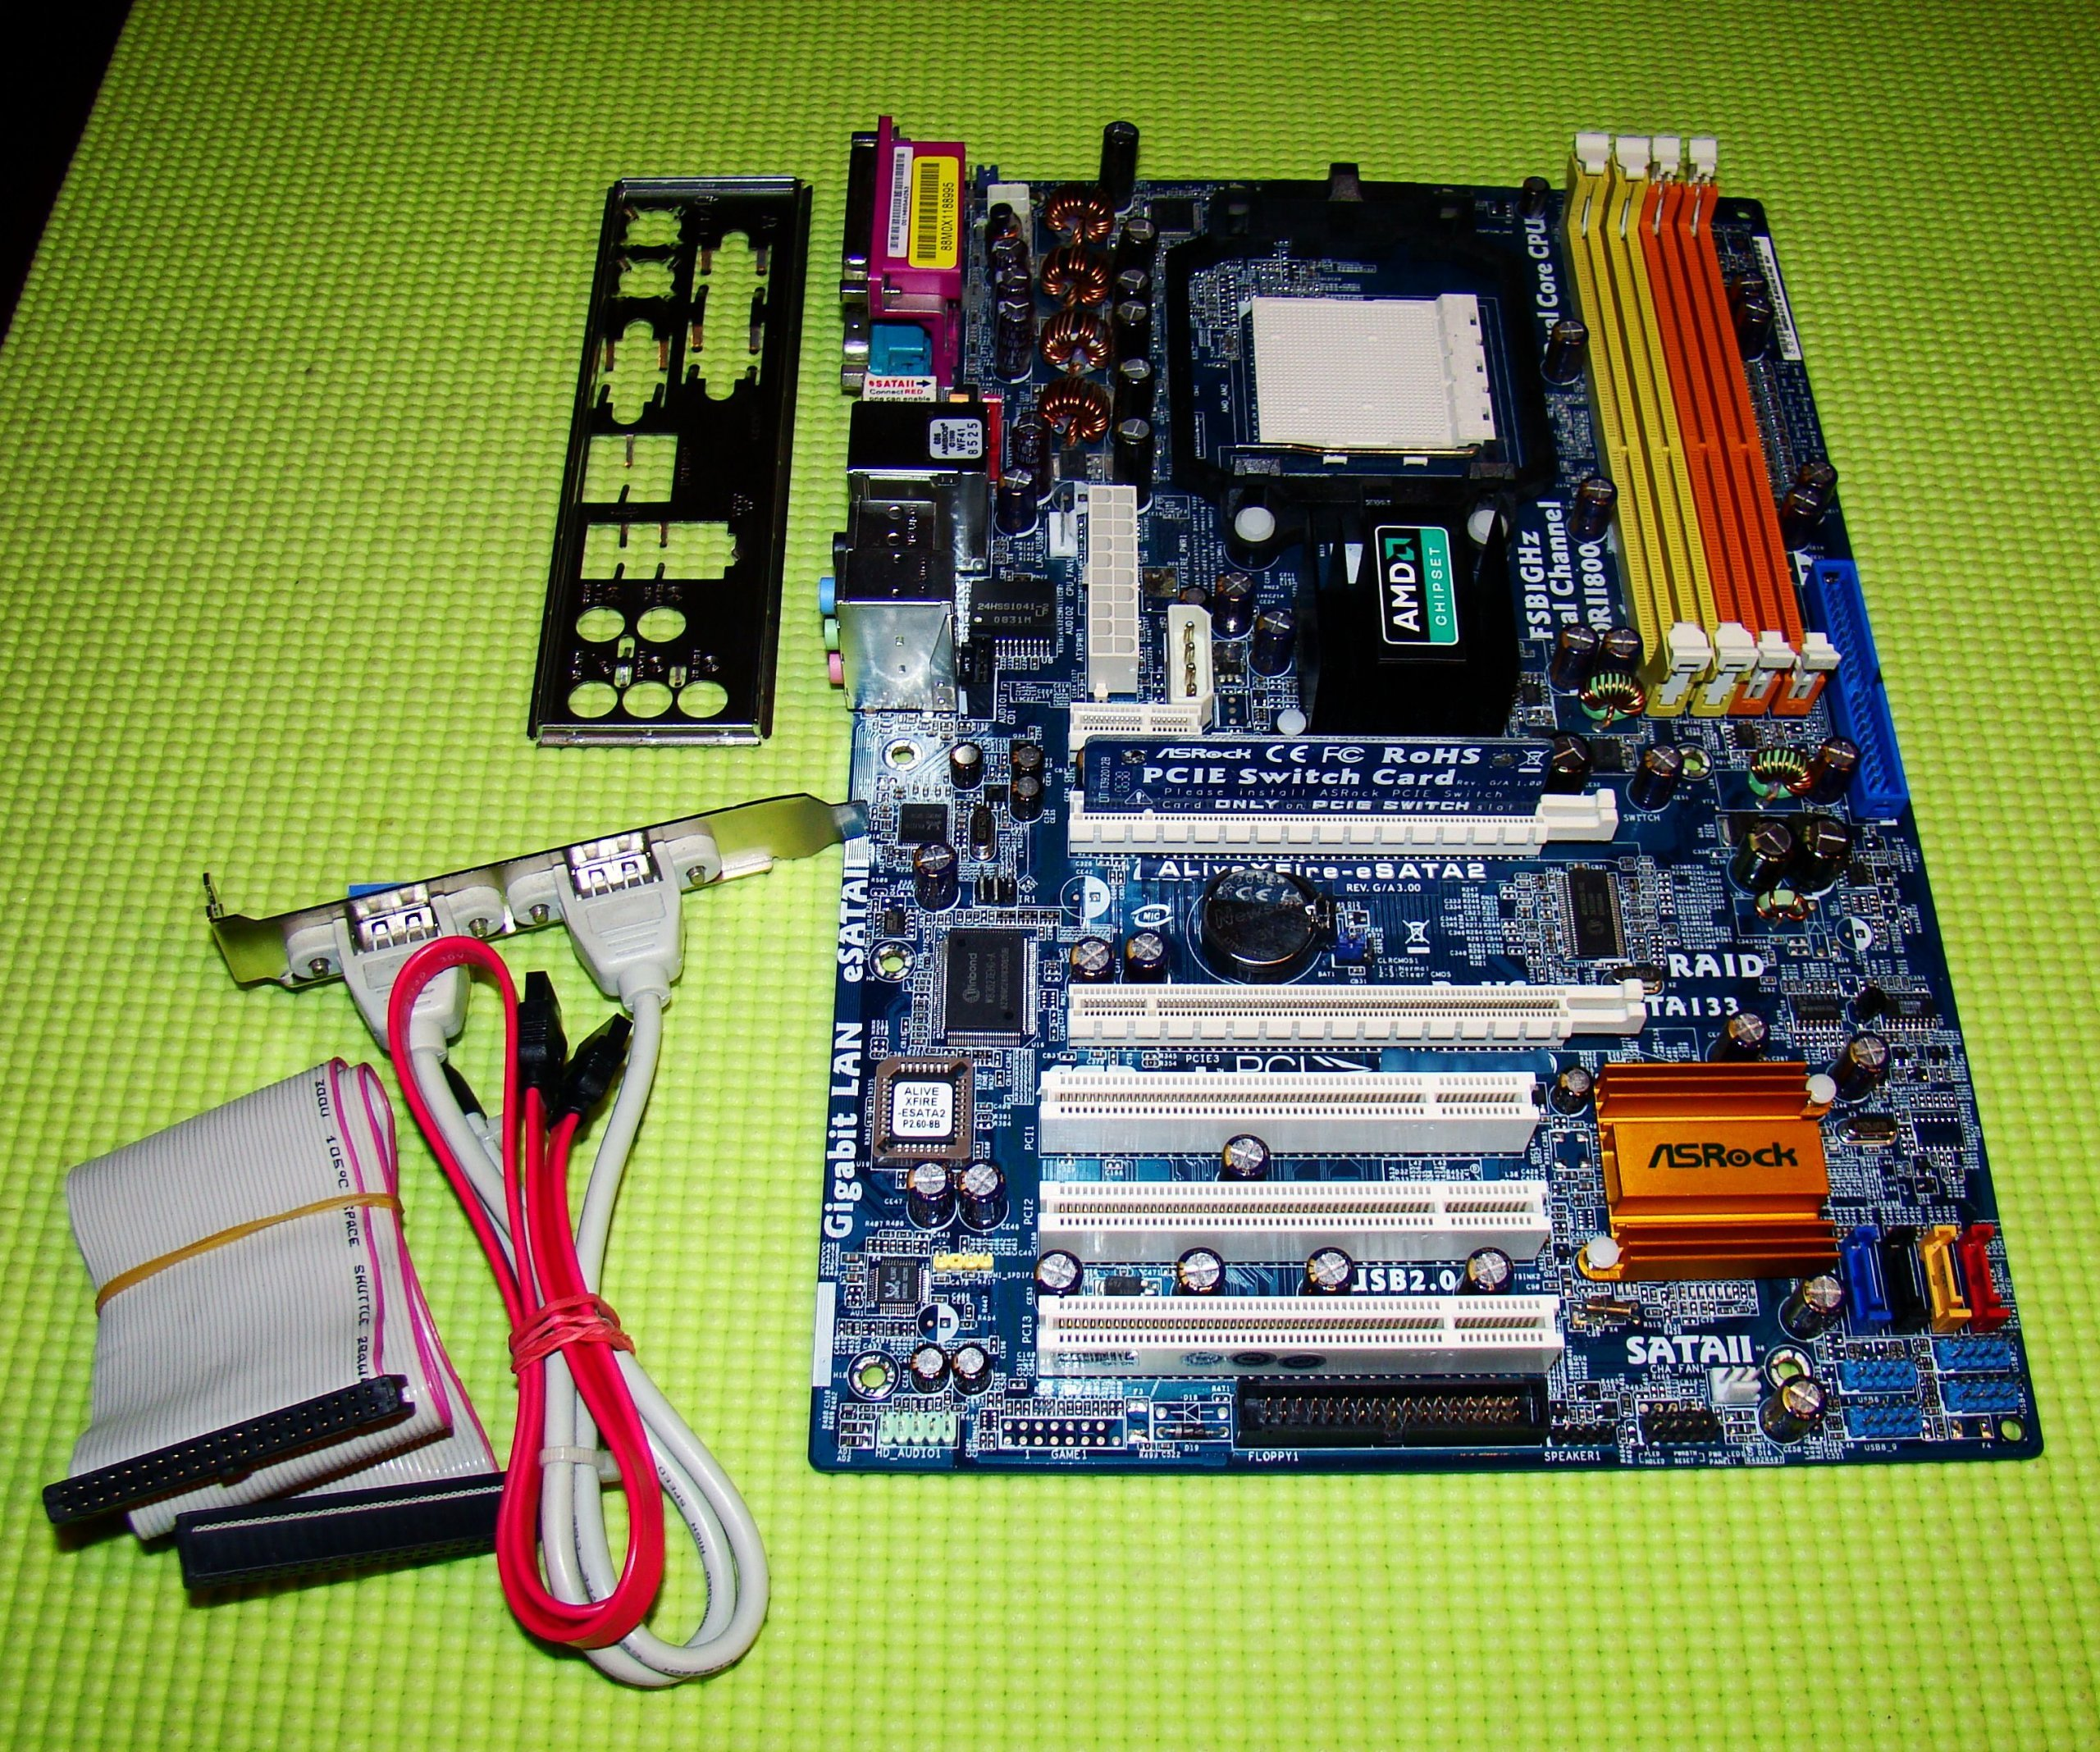 ASROCK ALIVEXFIRE-ESATA2 R3.0 MOTHERBOARD DOWNLOAD DRIVERS